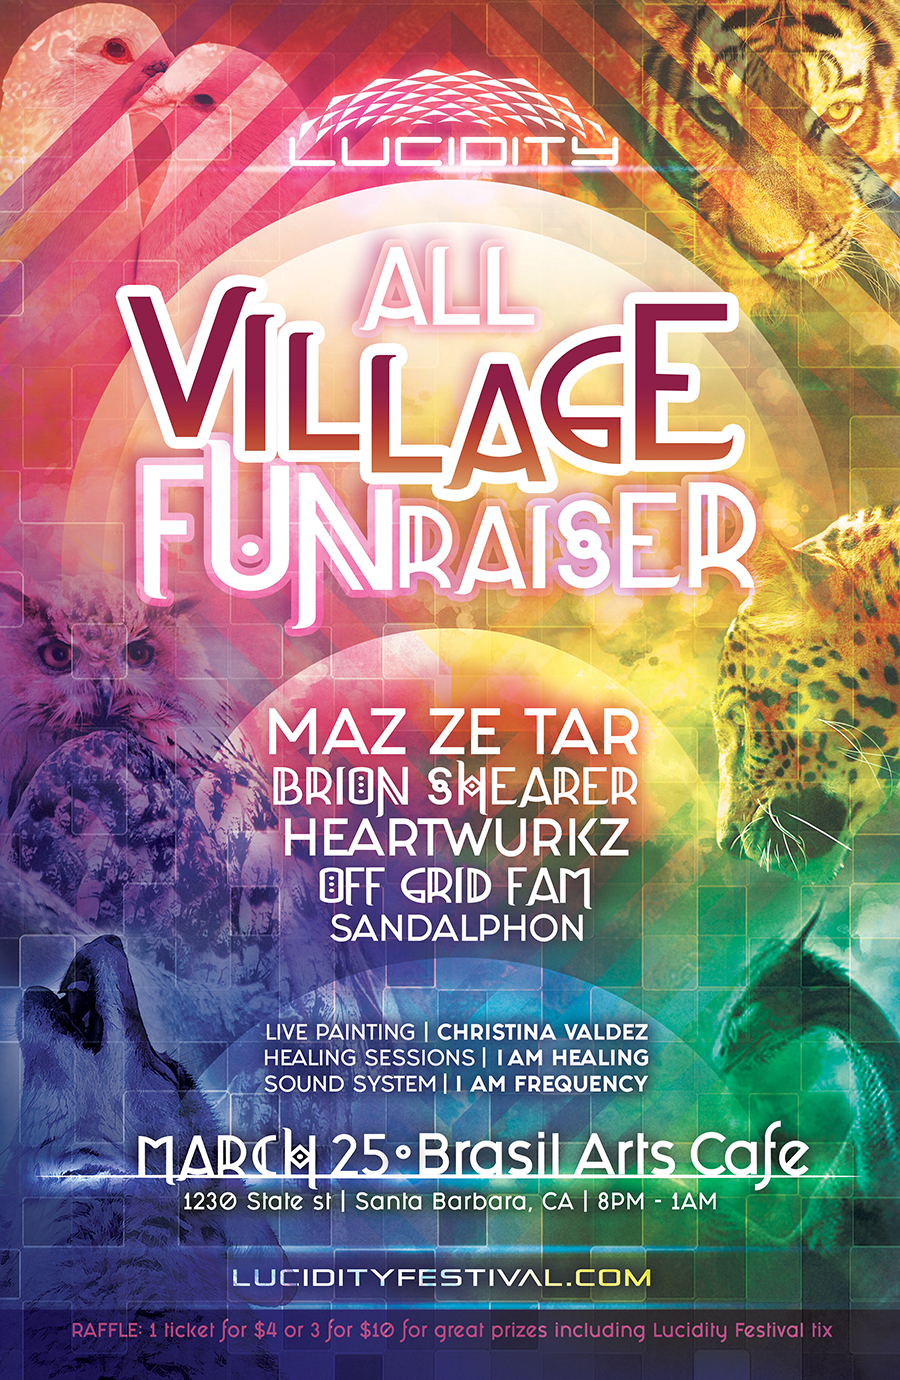 Village FUNraiser Event